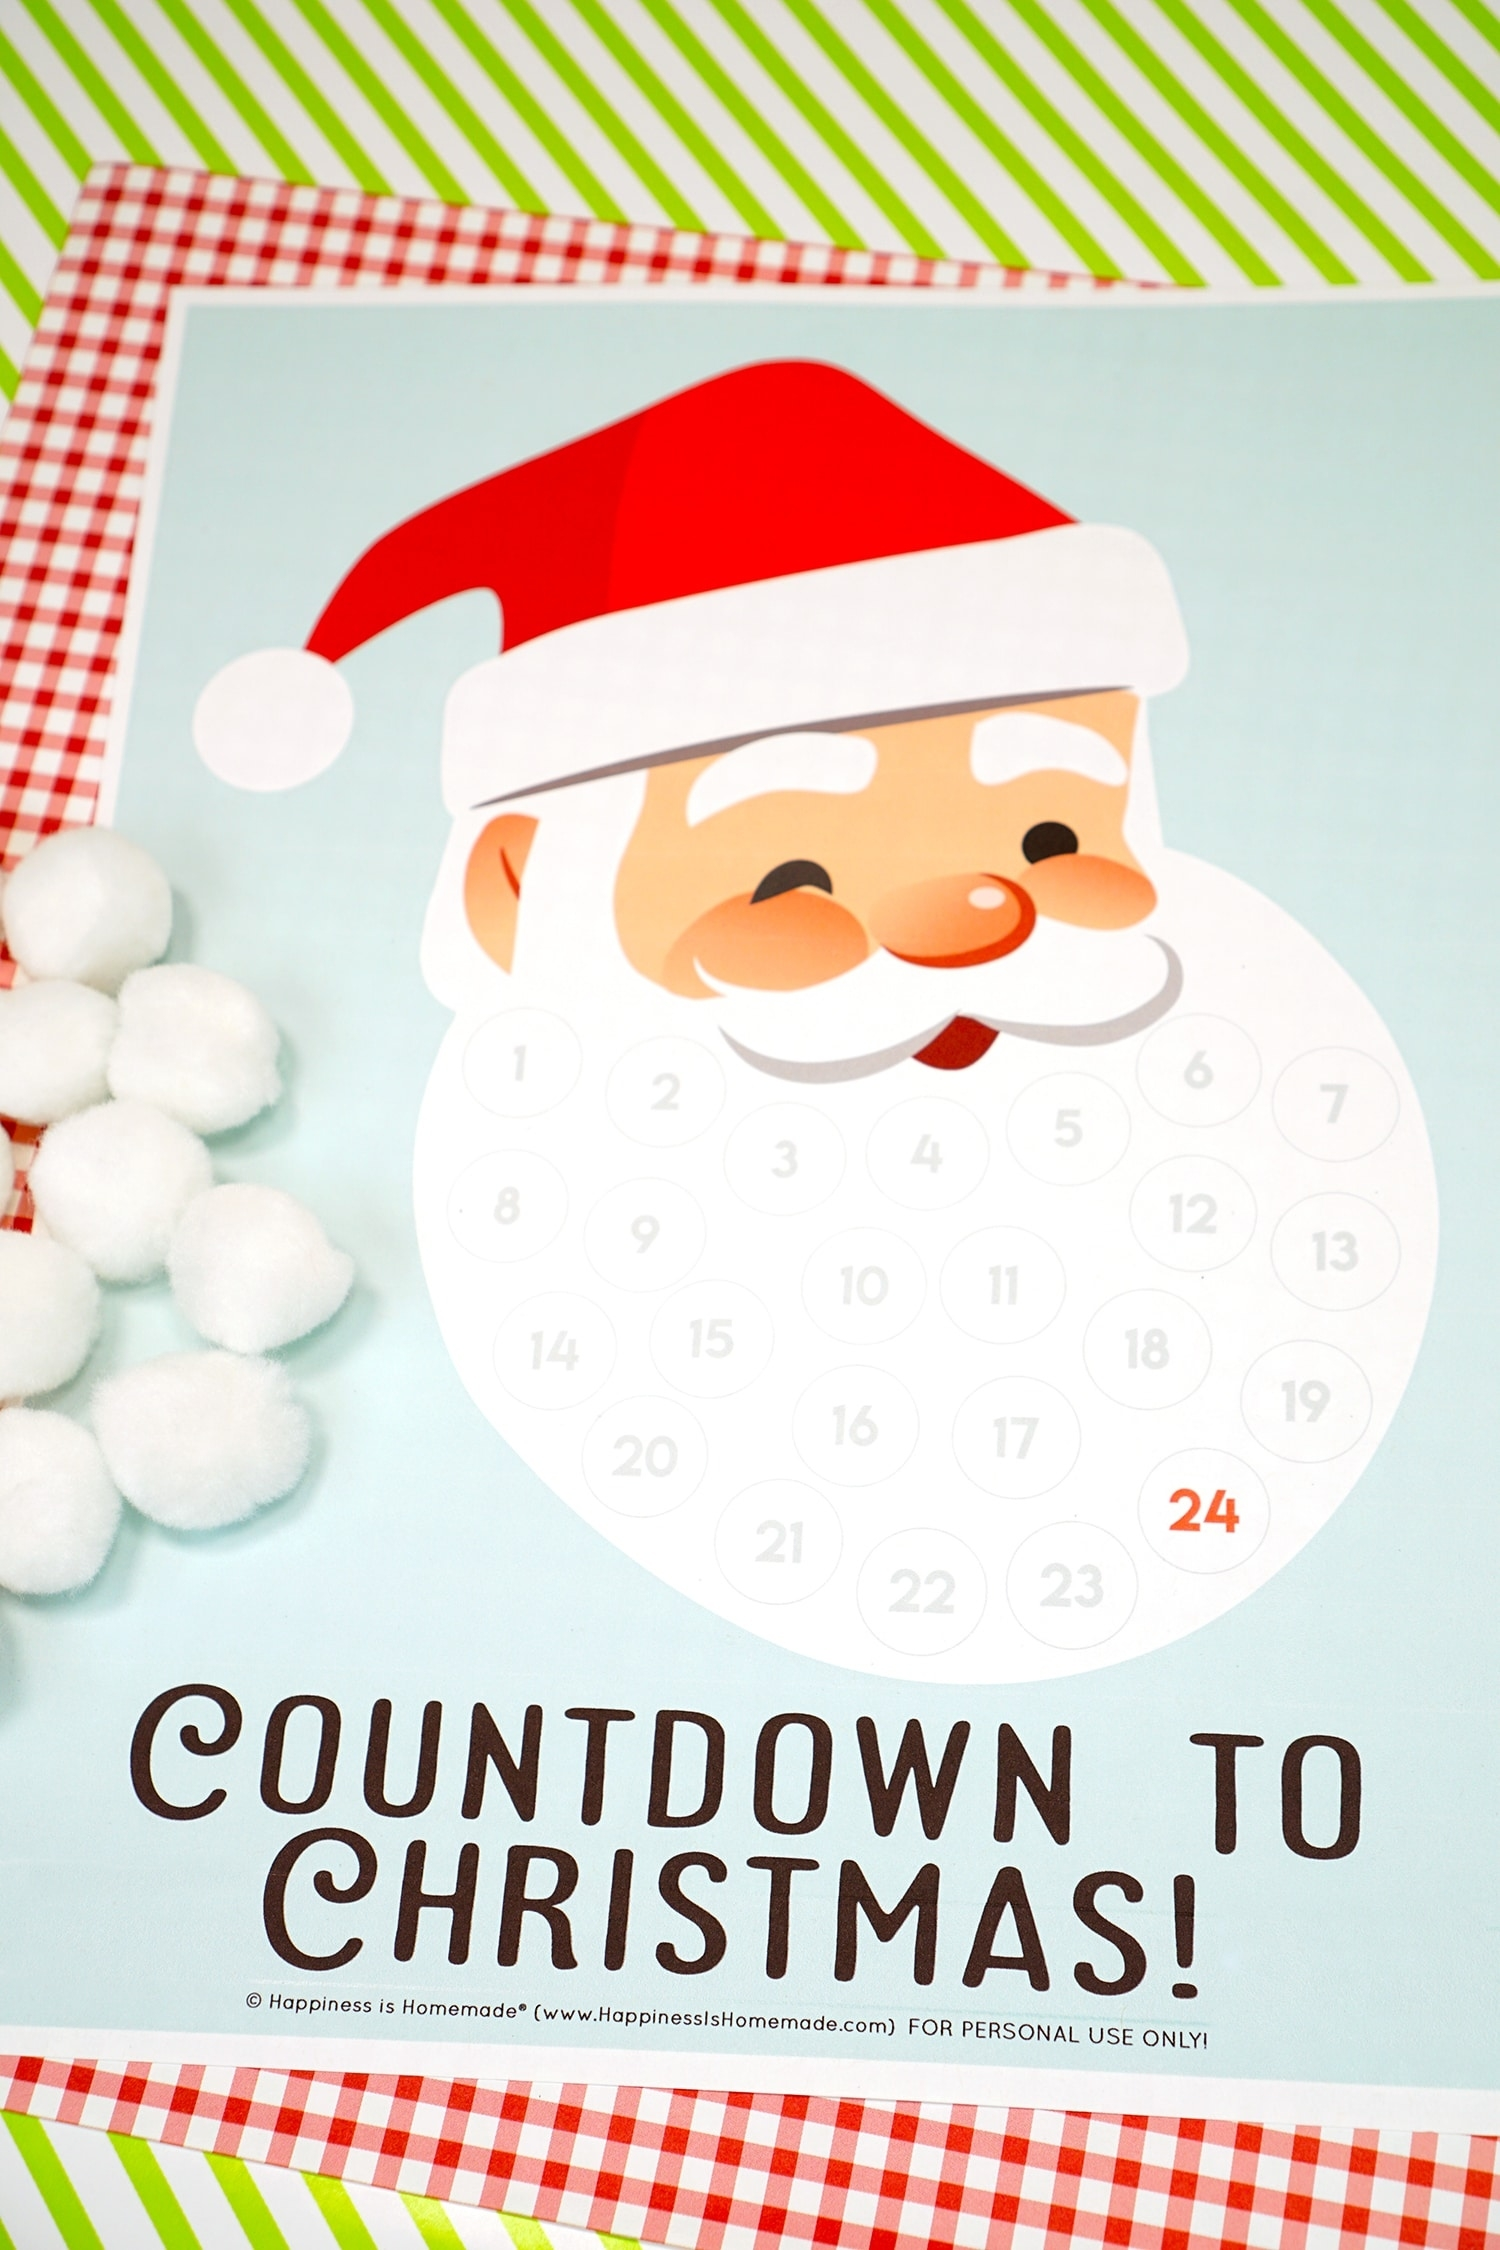 Santa Christmas Countdown Printable - Happiness Is Homemade Countdown To Christmas Calendar Printable 2020